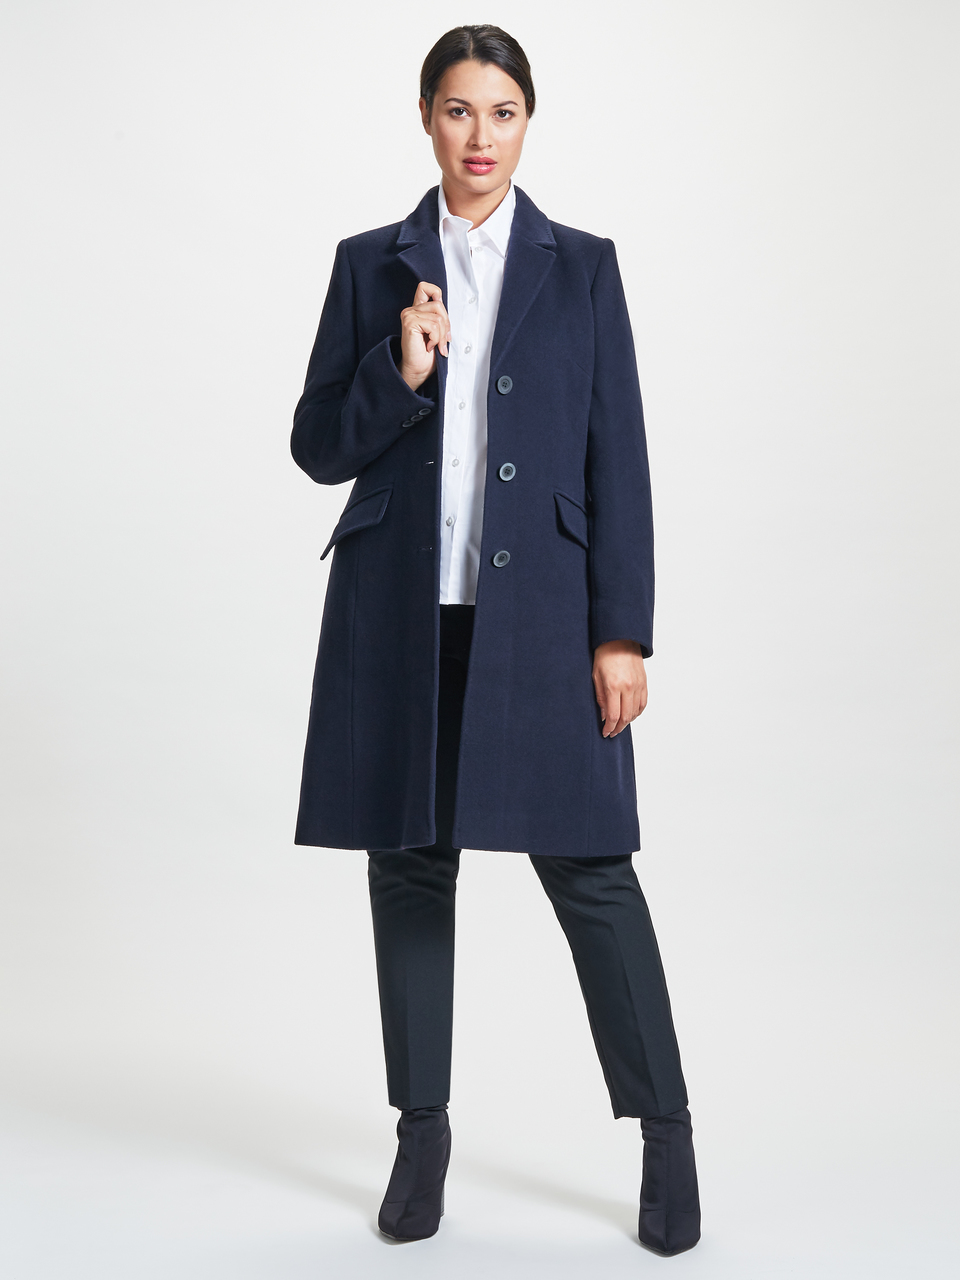 ^ I own the City Coat and I absolutely love it. It comes in red, black and navy. It's a beauty.